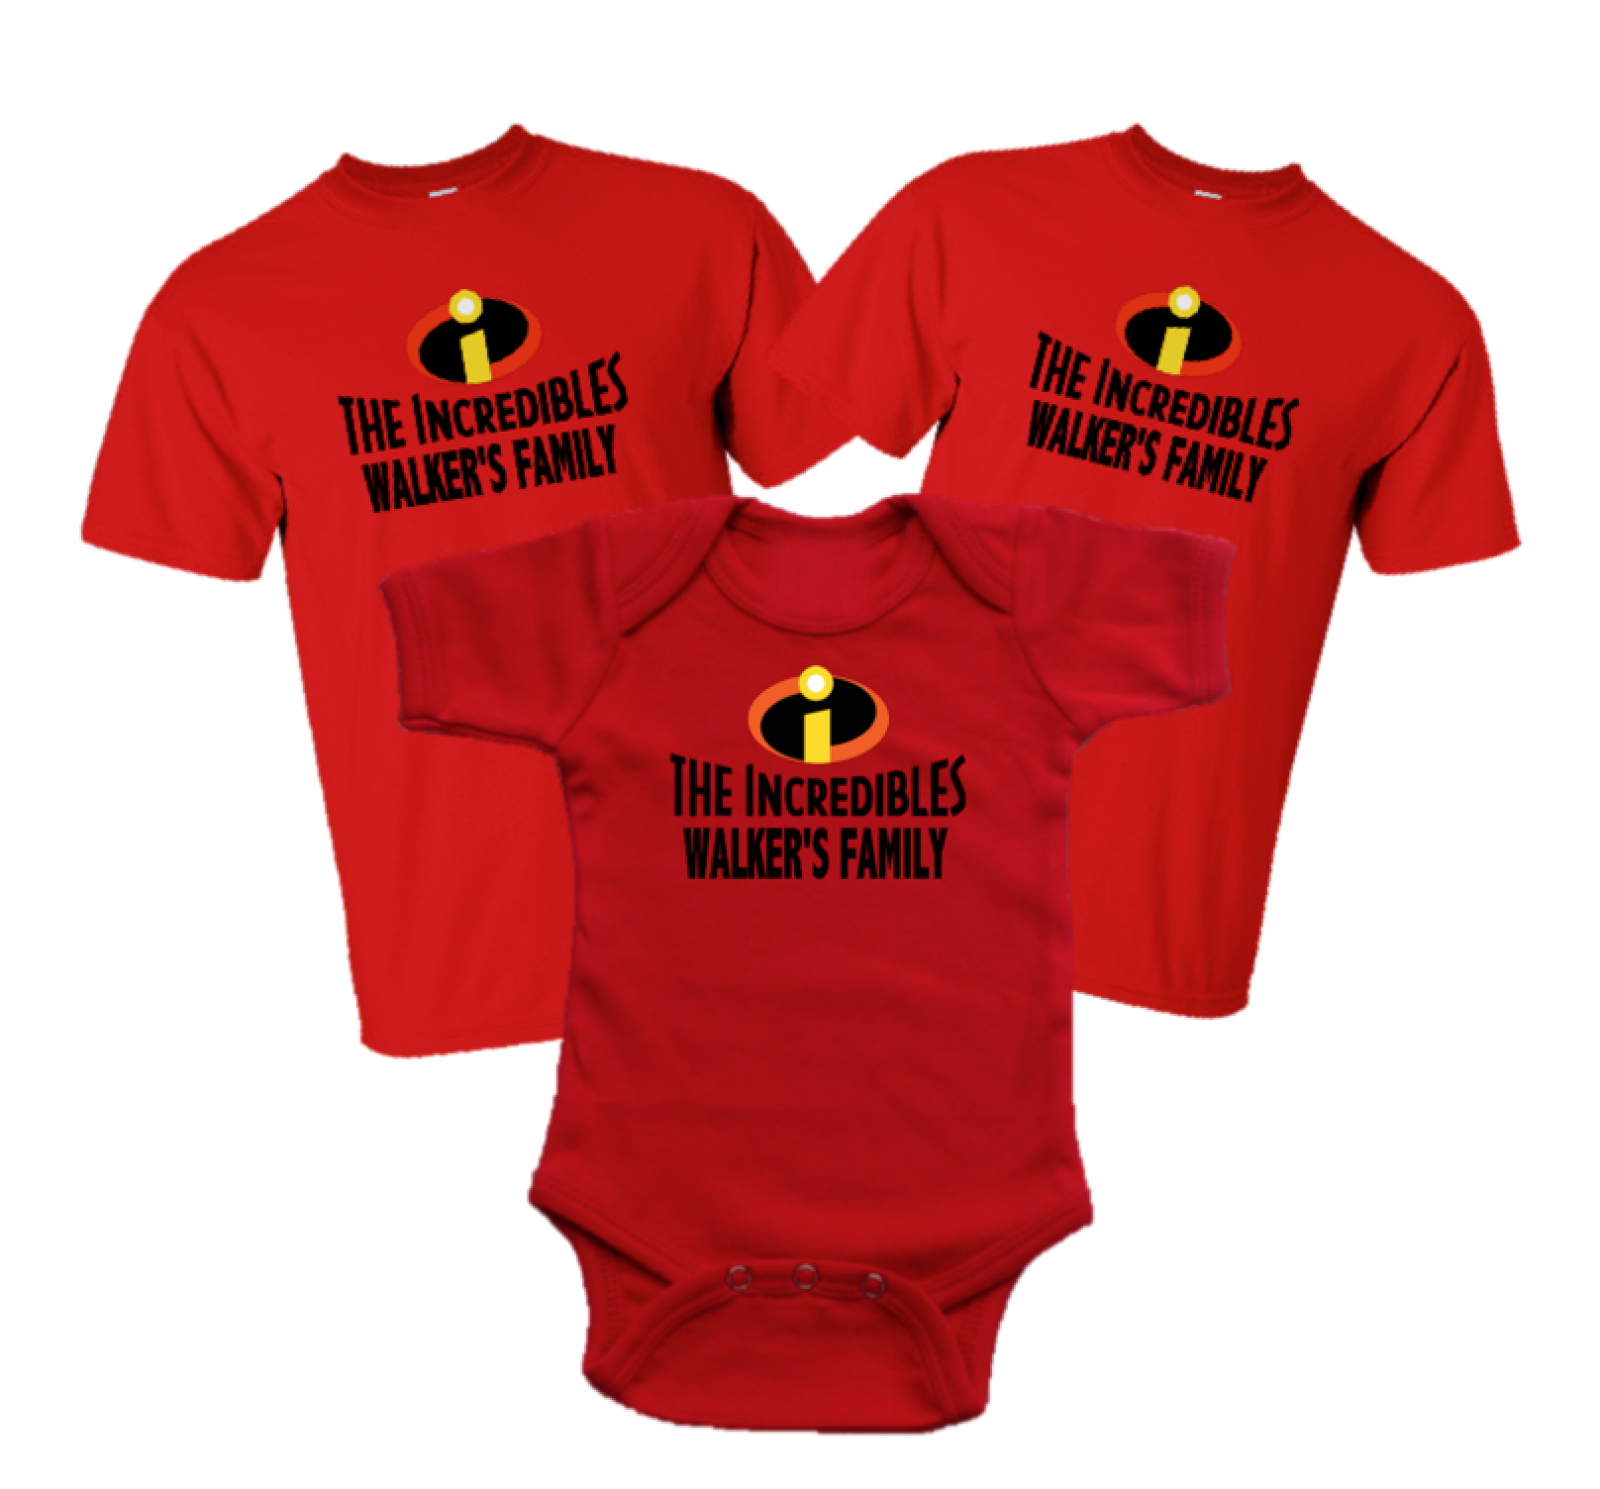 4a11eed7d Disney Family Incredibles Vacation Family T-shirts | The Official ...